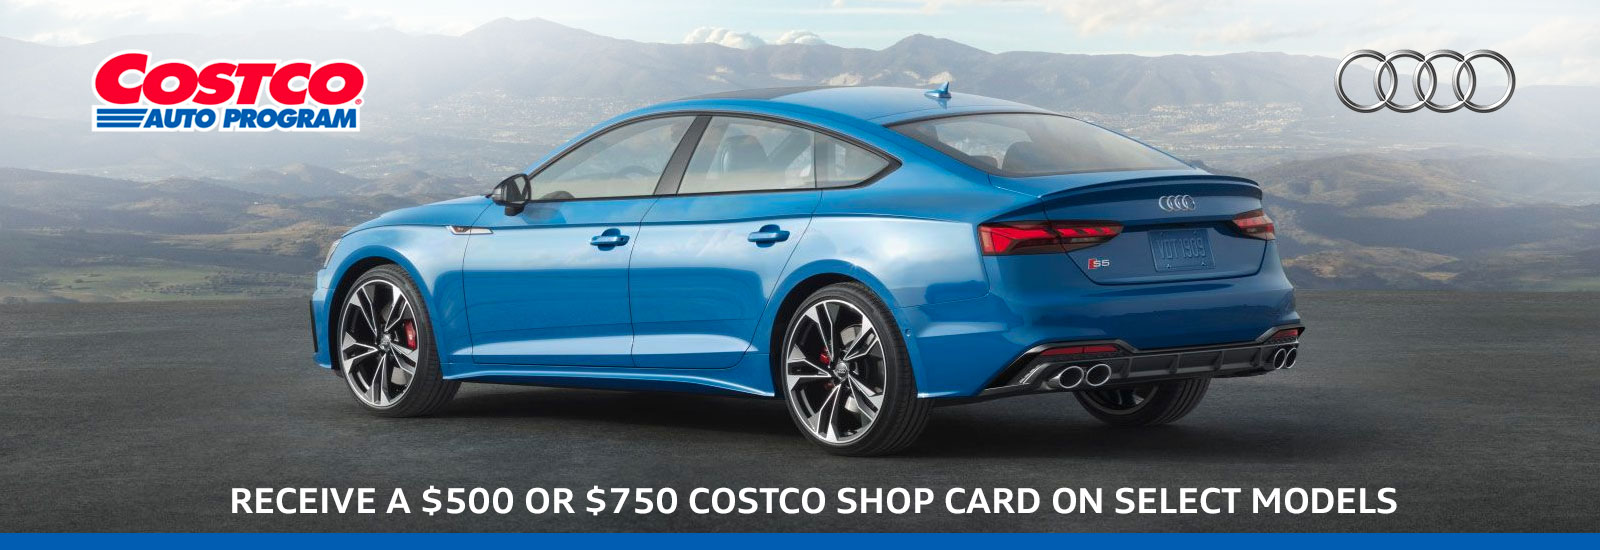 Costco Shop Card with Purchase